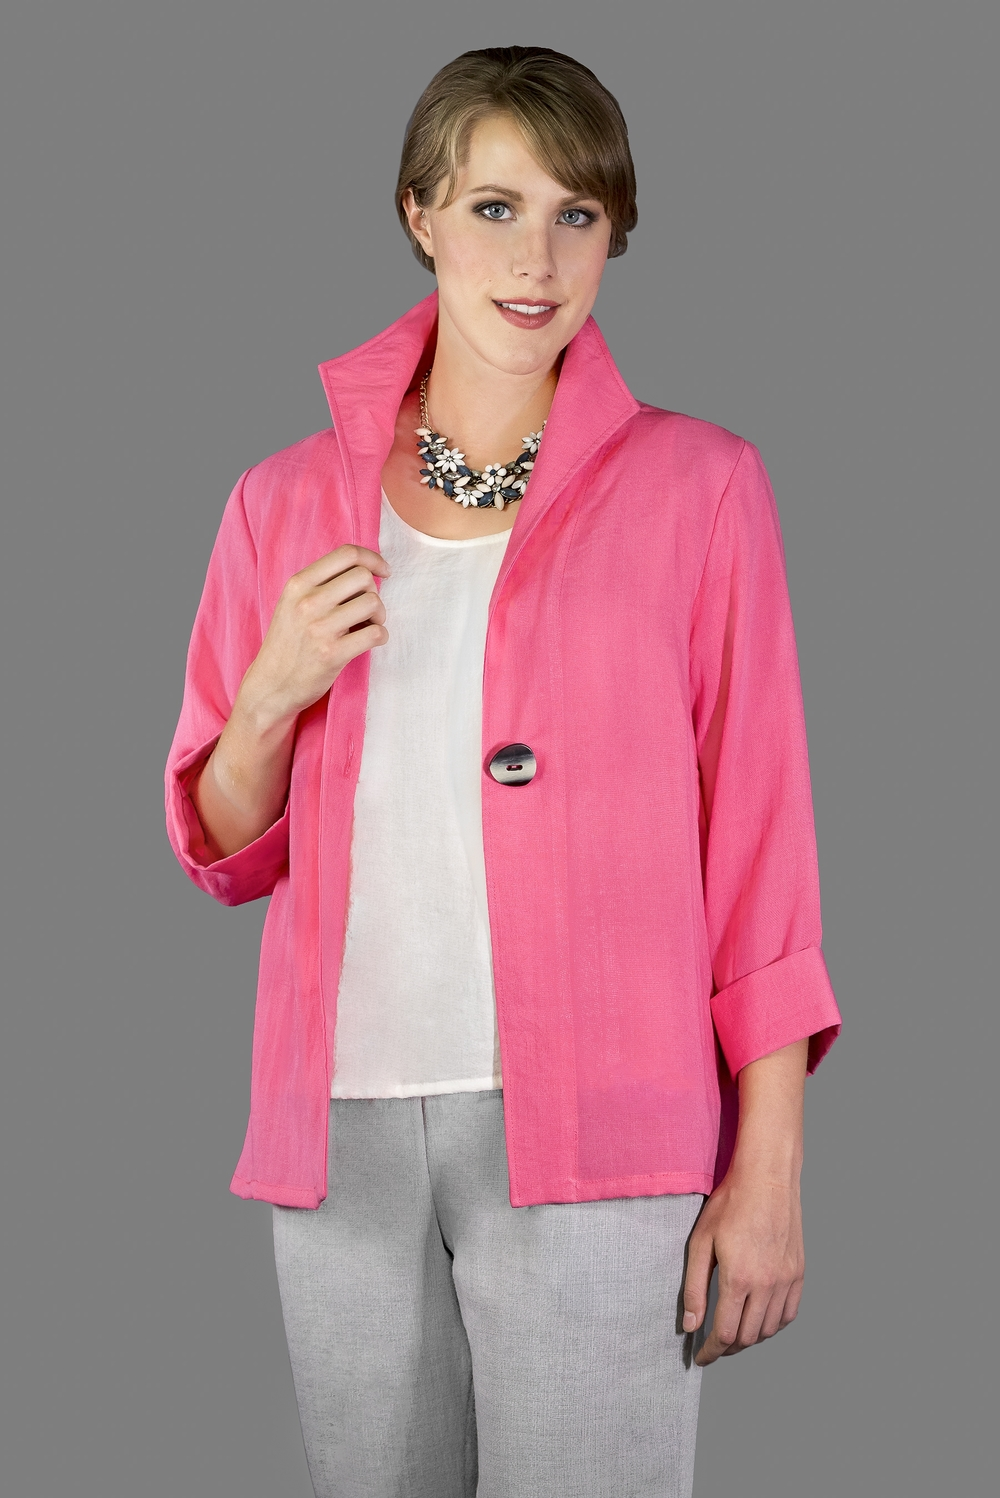 AA188 - One Button Short Jacket    CL3684 - Peony